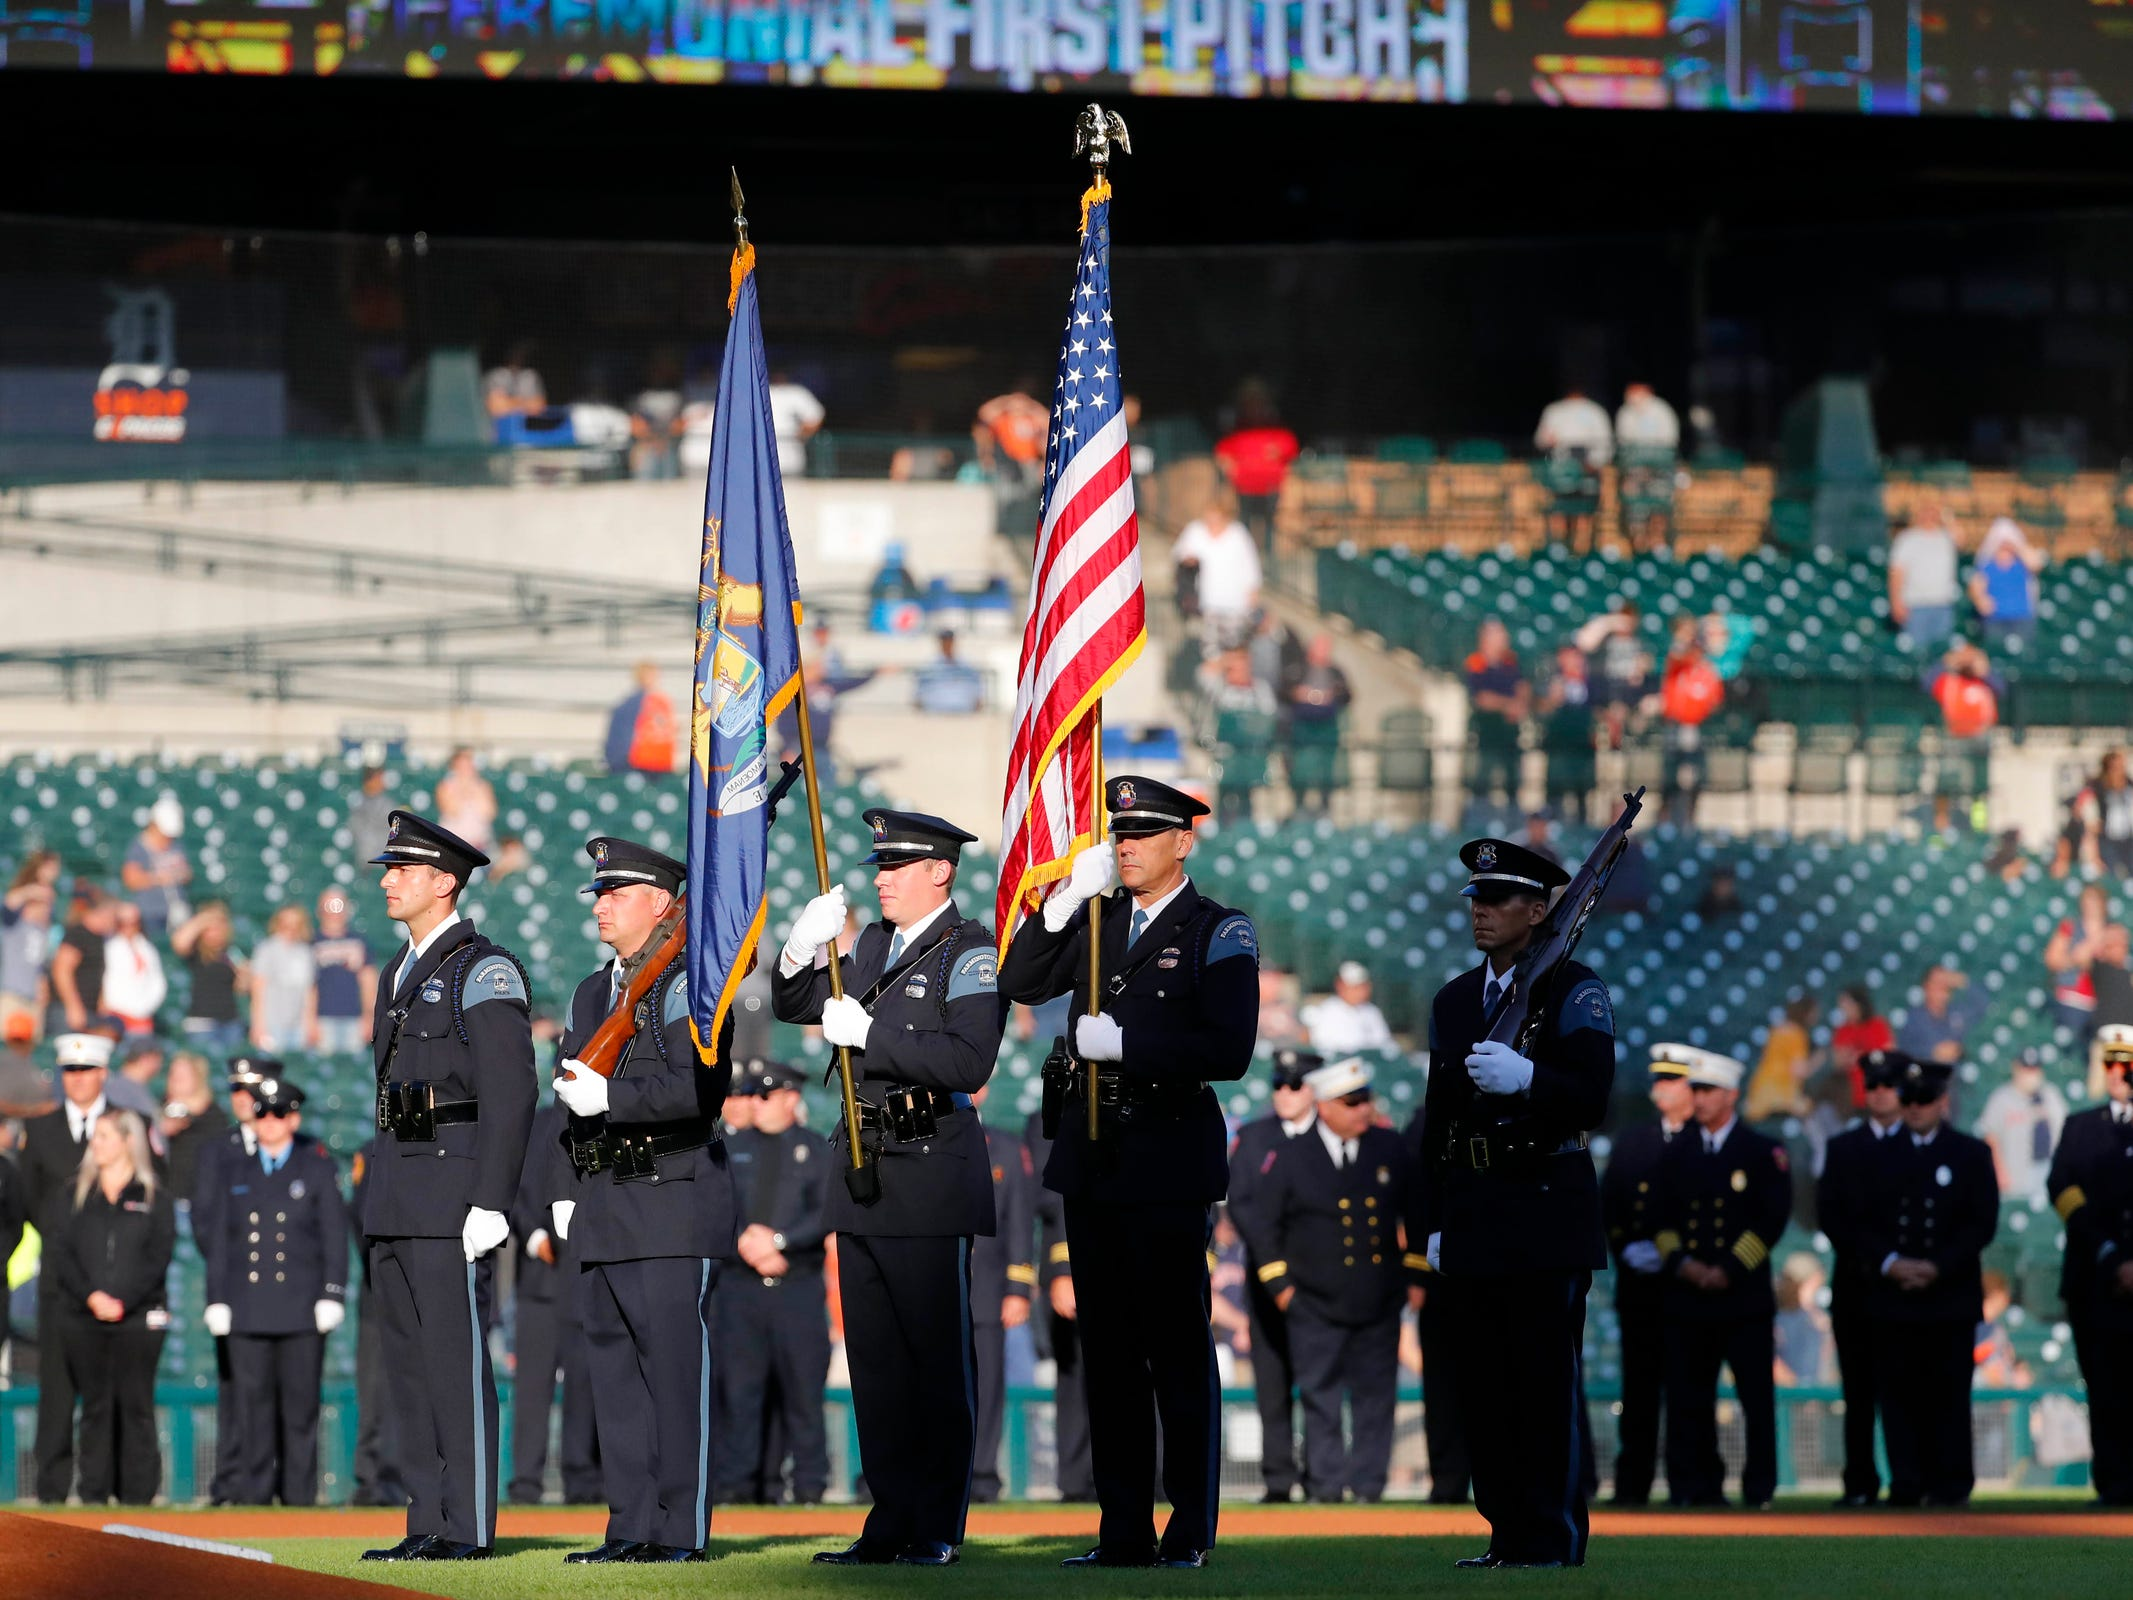 Honor guard during the national anthem prior to the game between the Detroit Tigers and the Houston Astros at Comerica Park, Tuesday, Sept. 11, 2018.